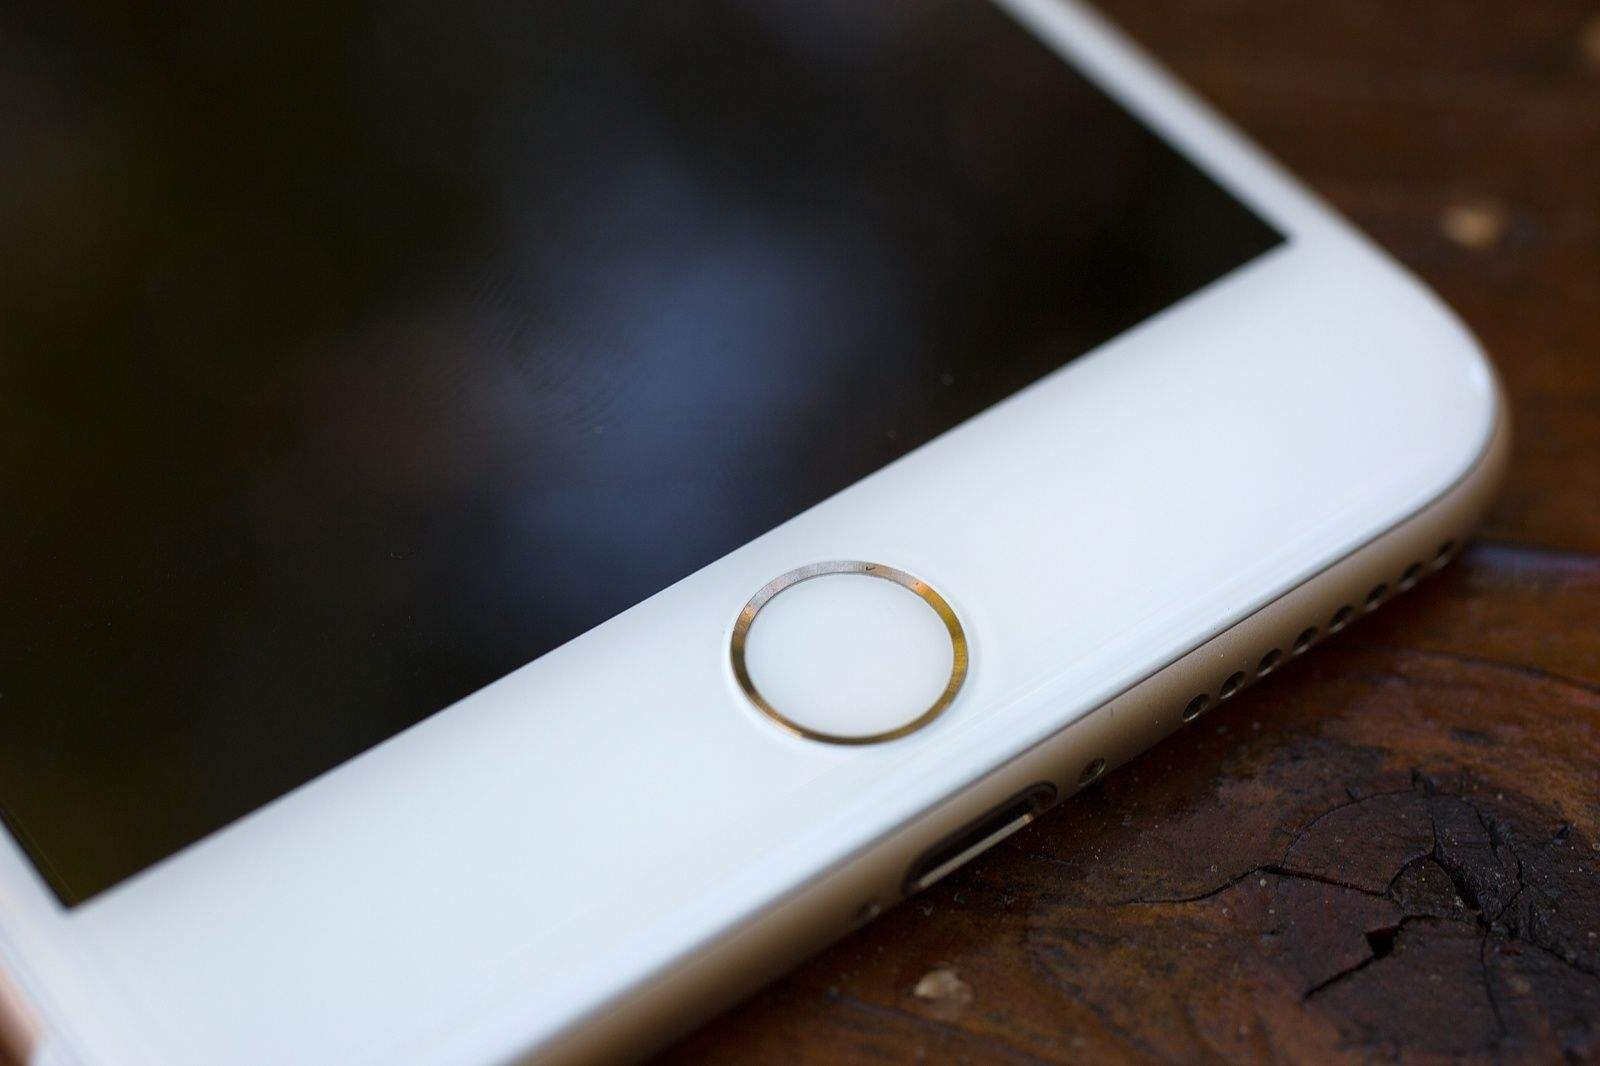 The iPhone 6's Touch ID sensor is greatly improved over the 5s &mdash for me, anyway.